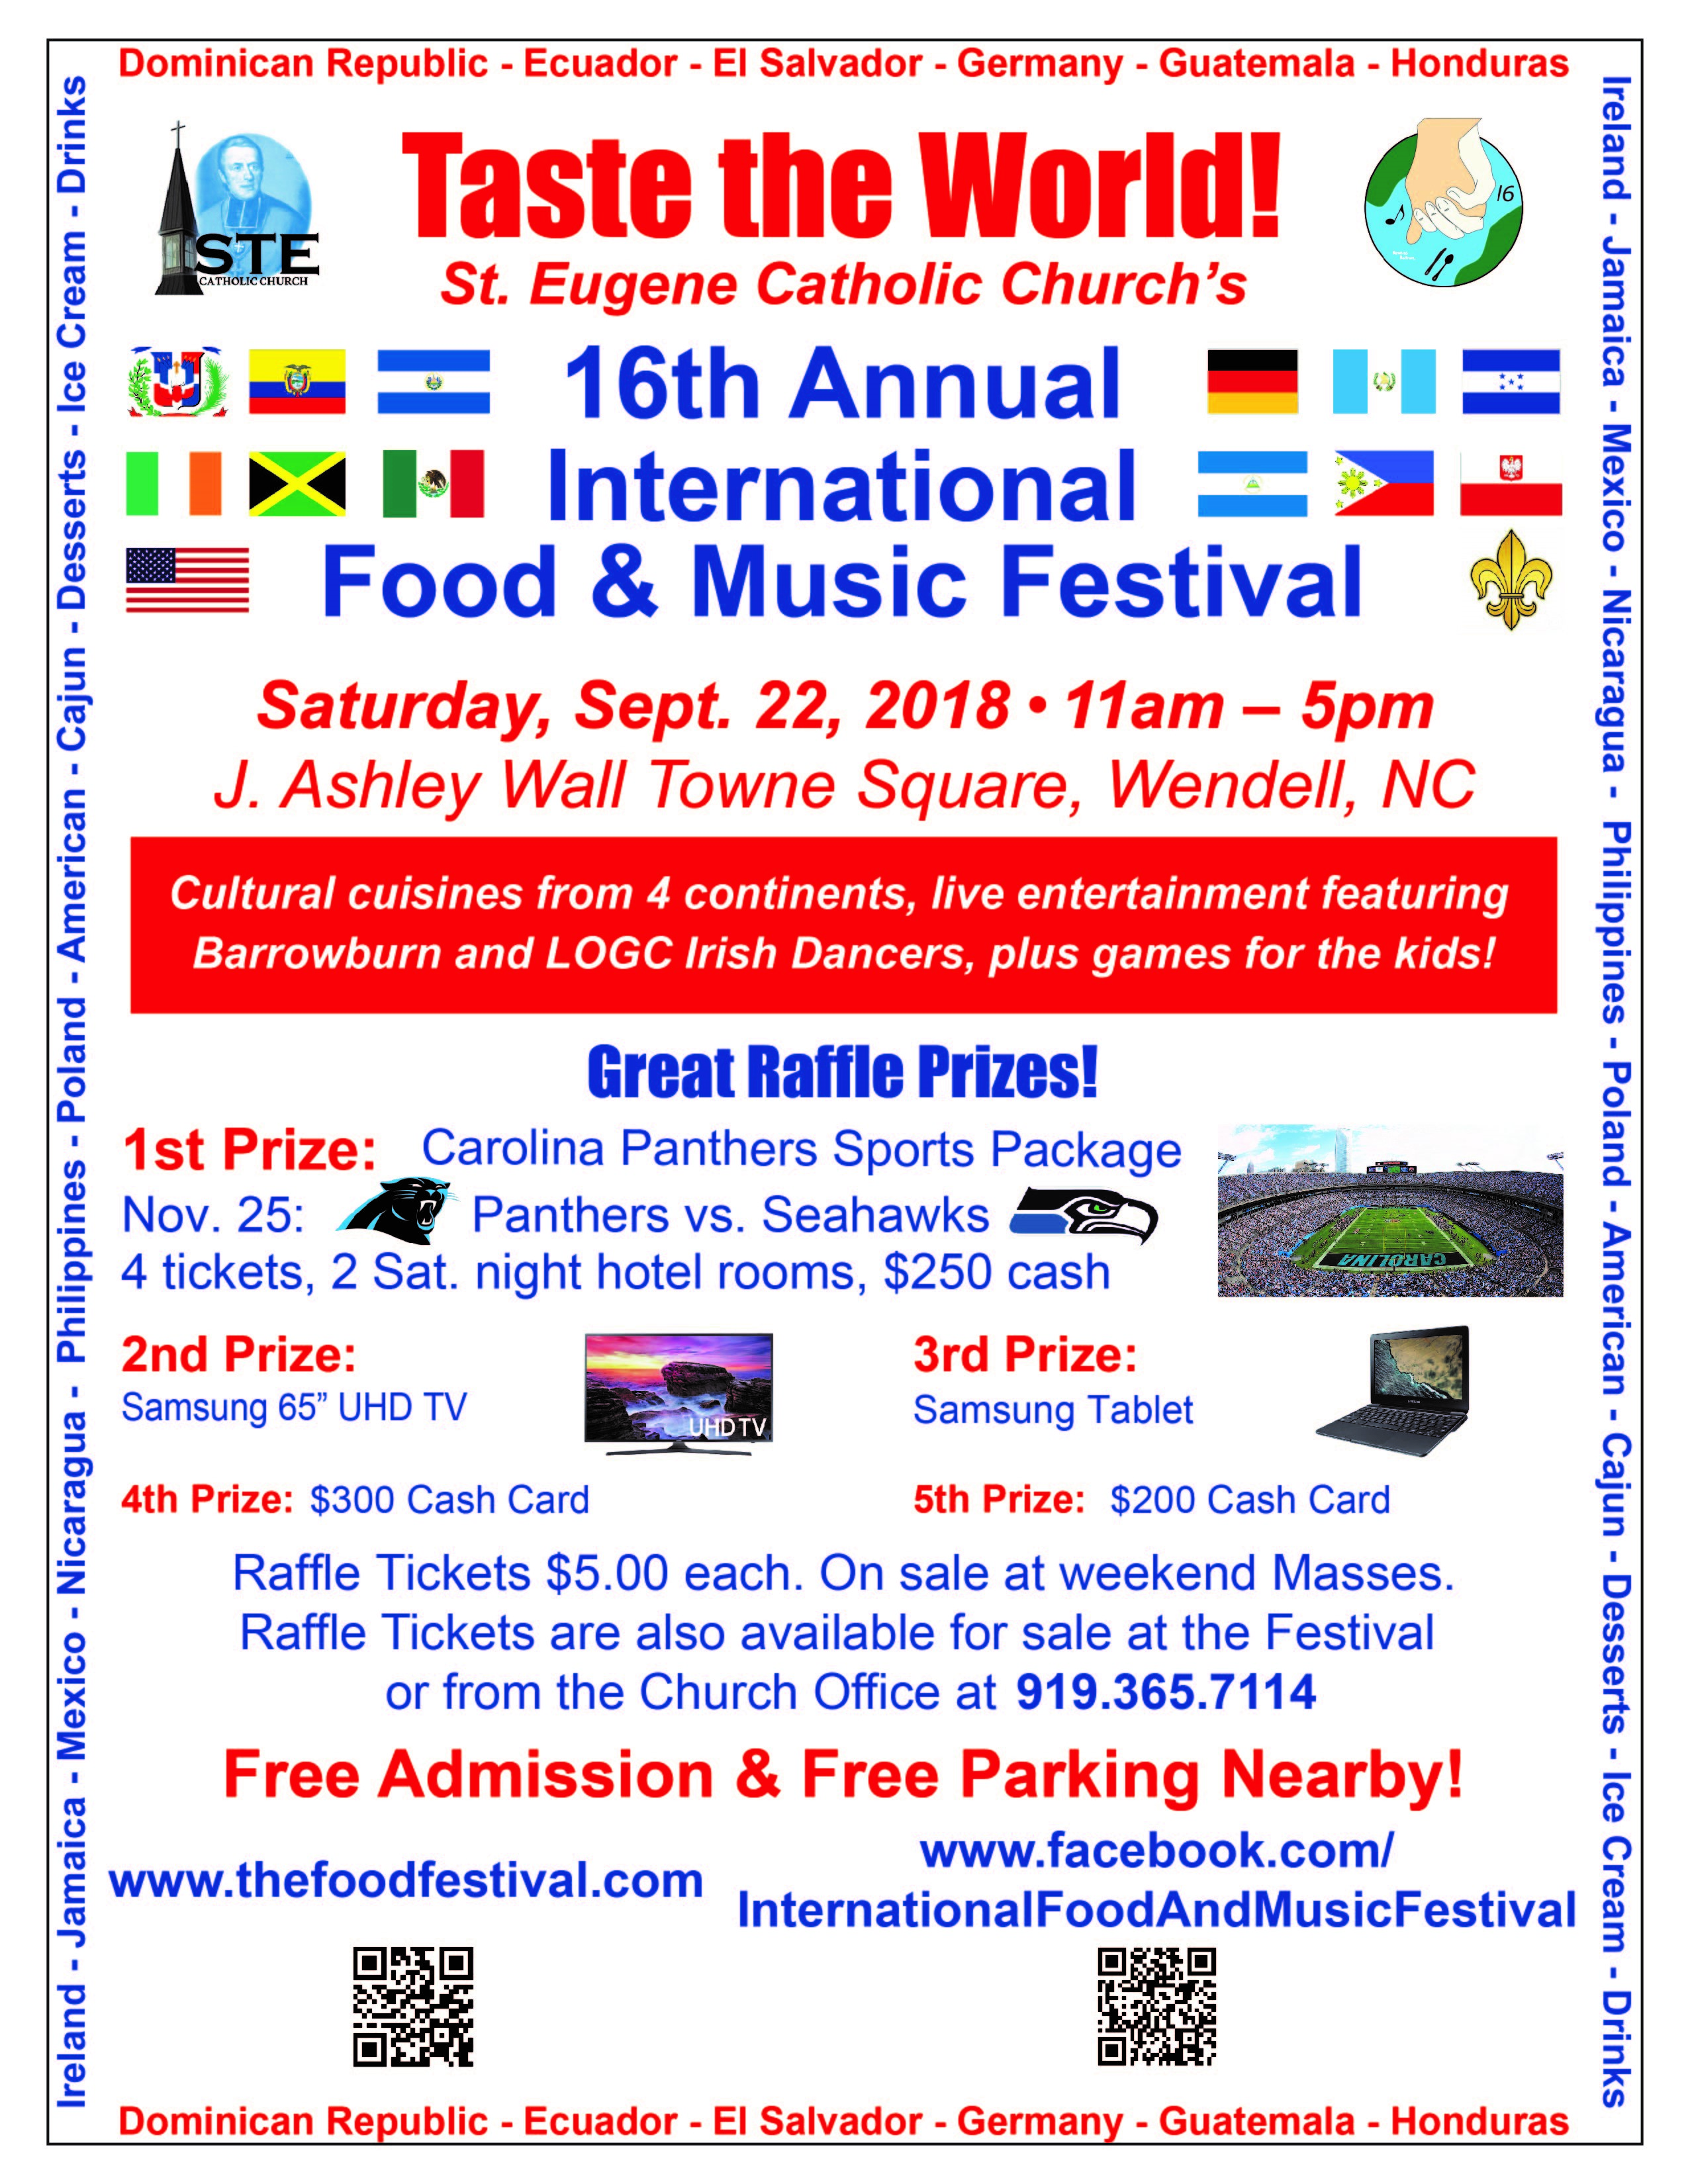 International Food and Music Festival IFMF 2018 flyer. Source: Thomas A. Zang, Jr. (St. Eugene Catholic Church)